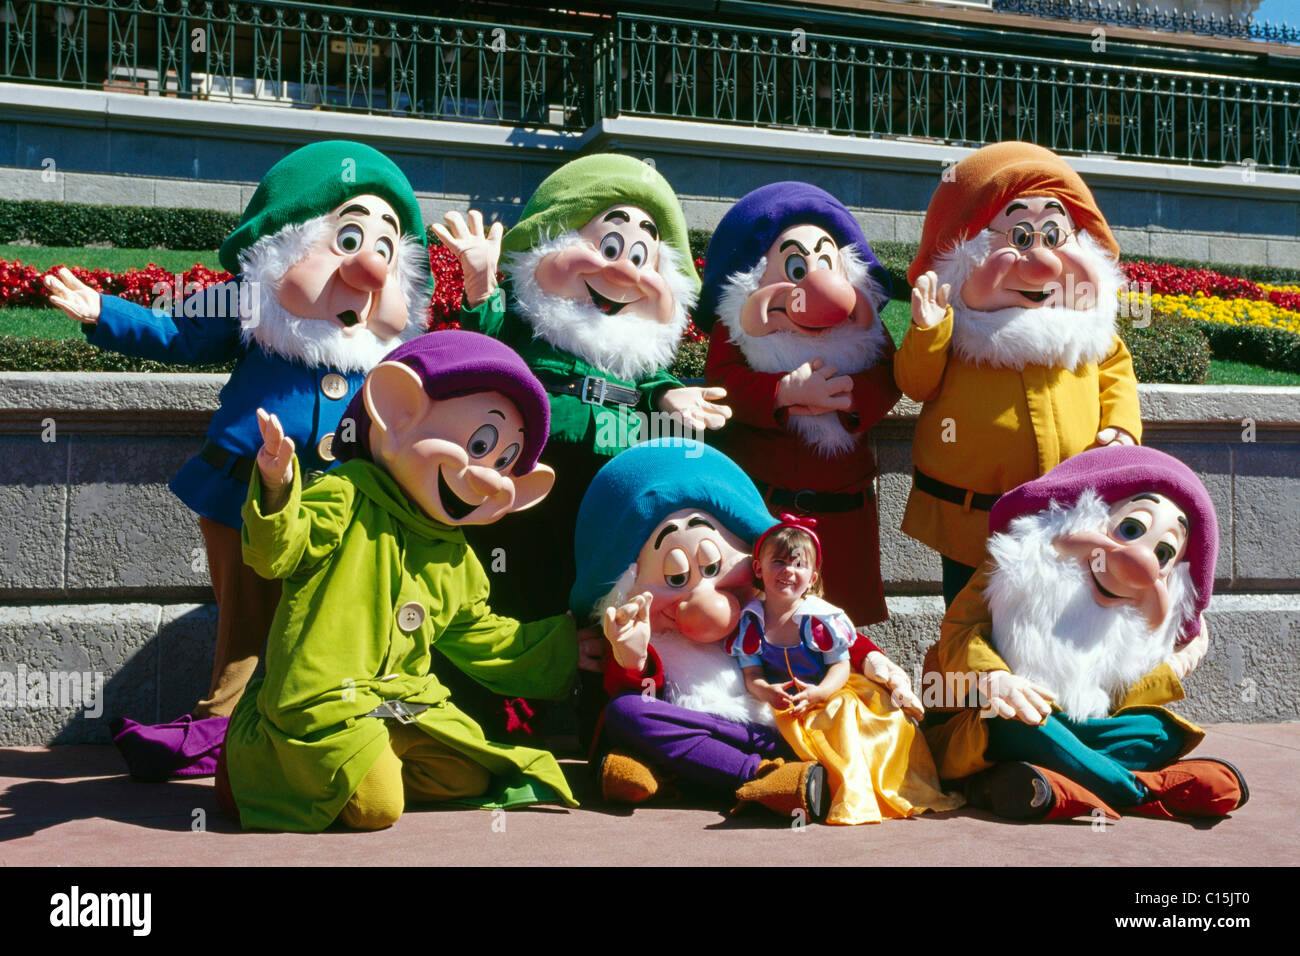 Snow White And The Seven Dwarfs Stock Photos Snow White And The